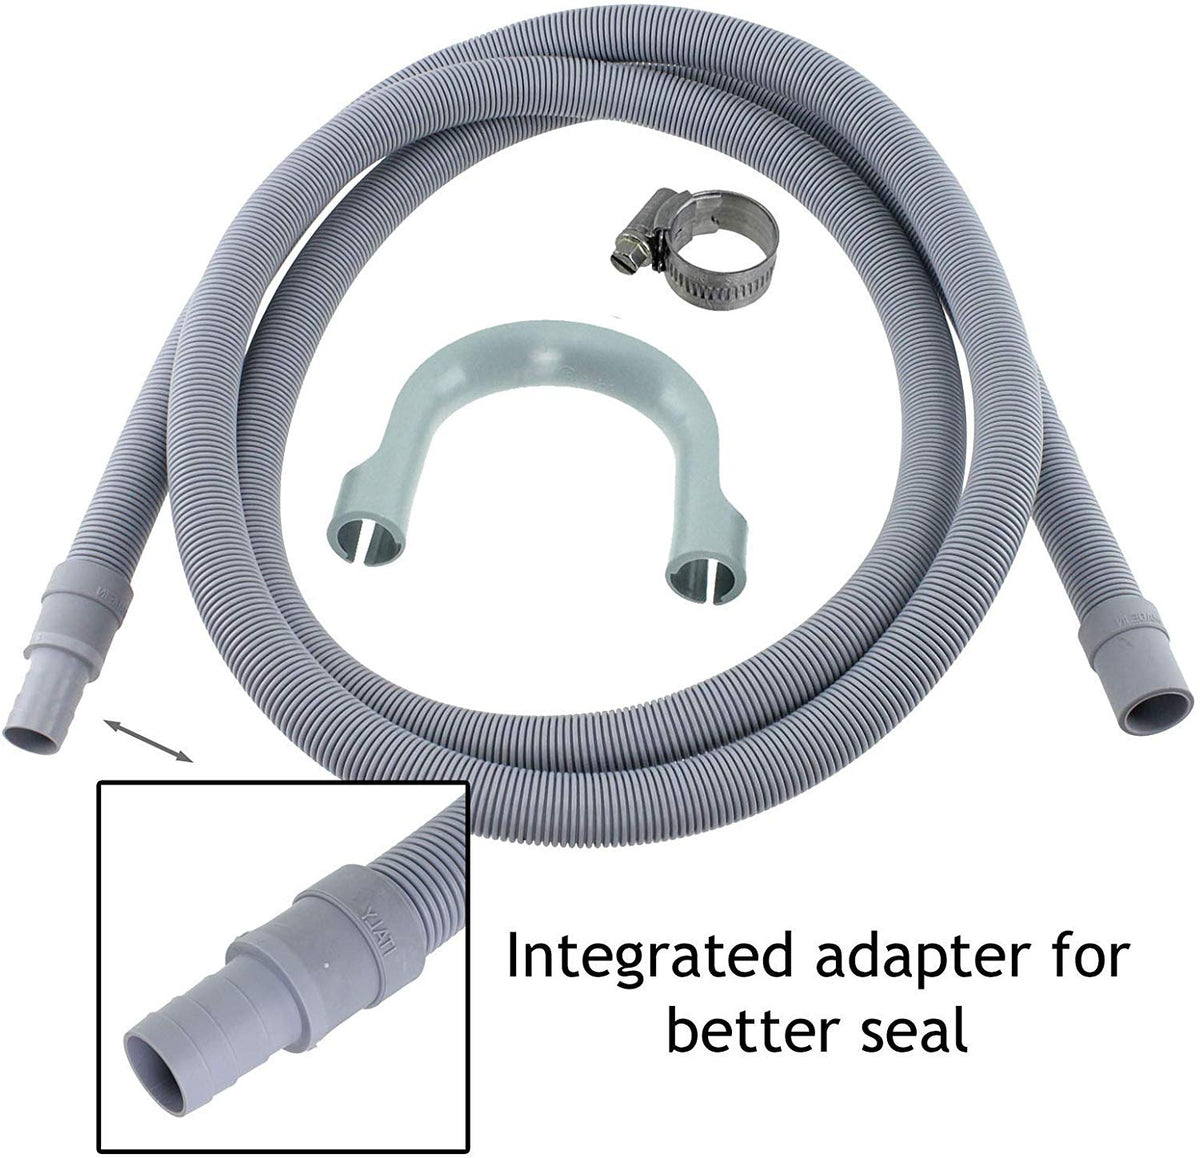 Siemens Tumble Dryer Vent Hose End Adaptor Tube Connector